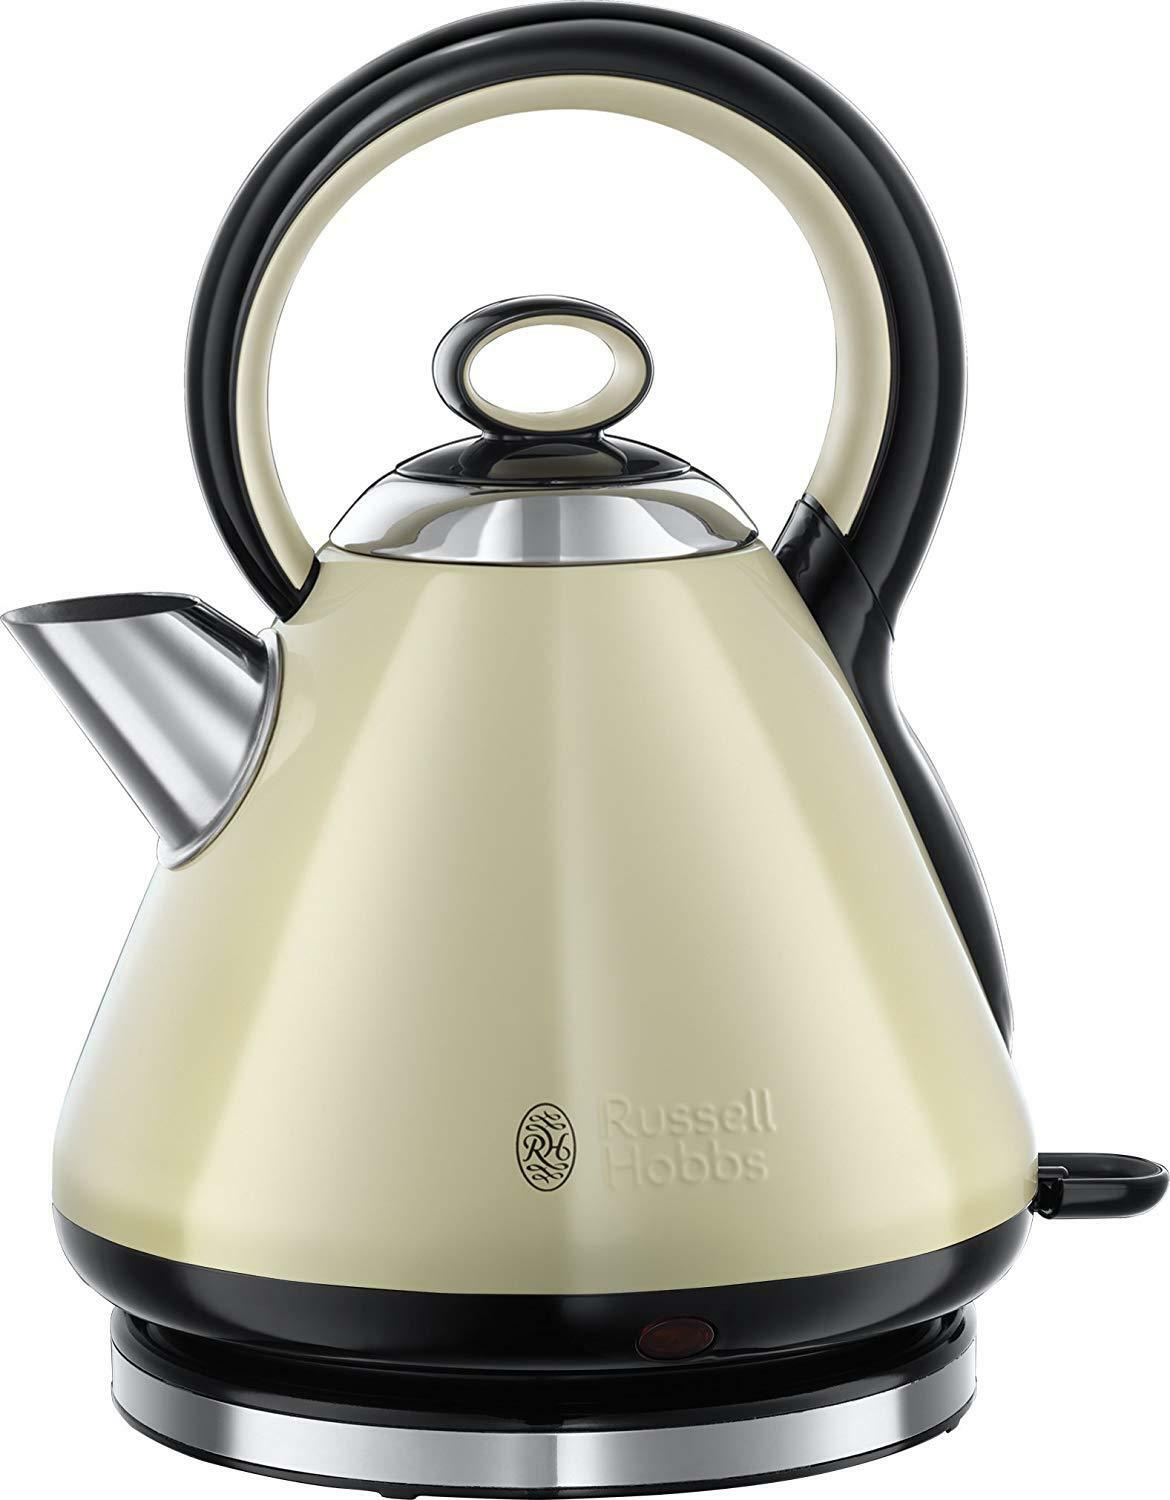 Russell Hobbs 21888 Legacy Quiet Boil Kettle, 3000 W, 1.7 Litre, Cream  NEW